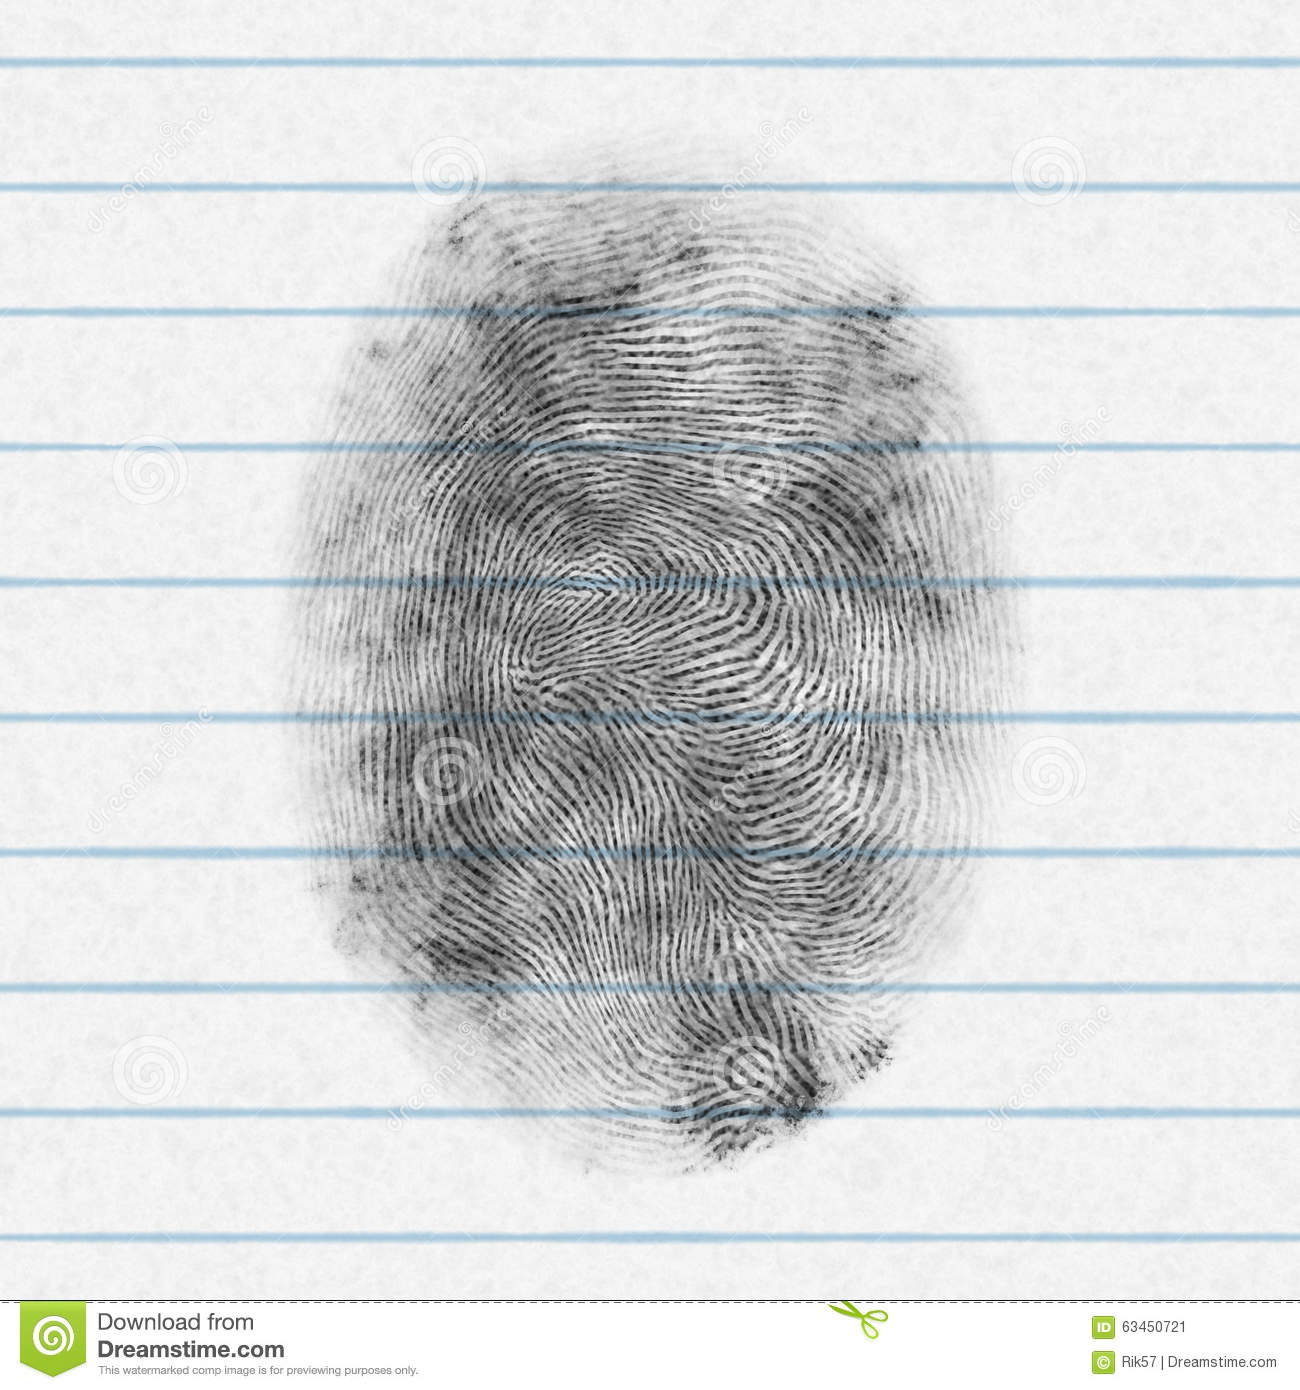 biometric thesis Read biometrics essays and research papers view and download complete sample biometrics essays, instructions, works cited pages, and more.